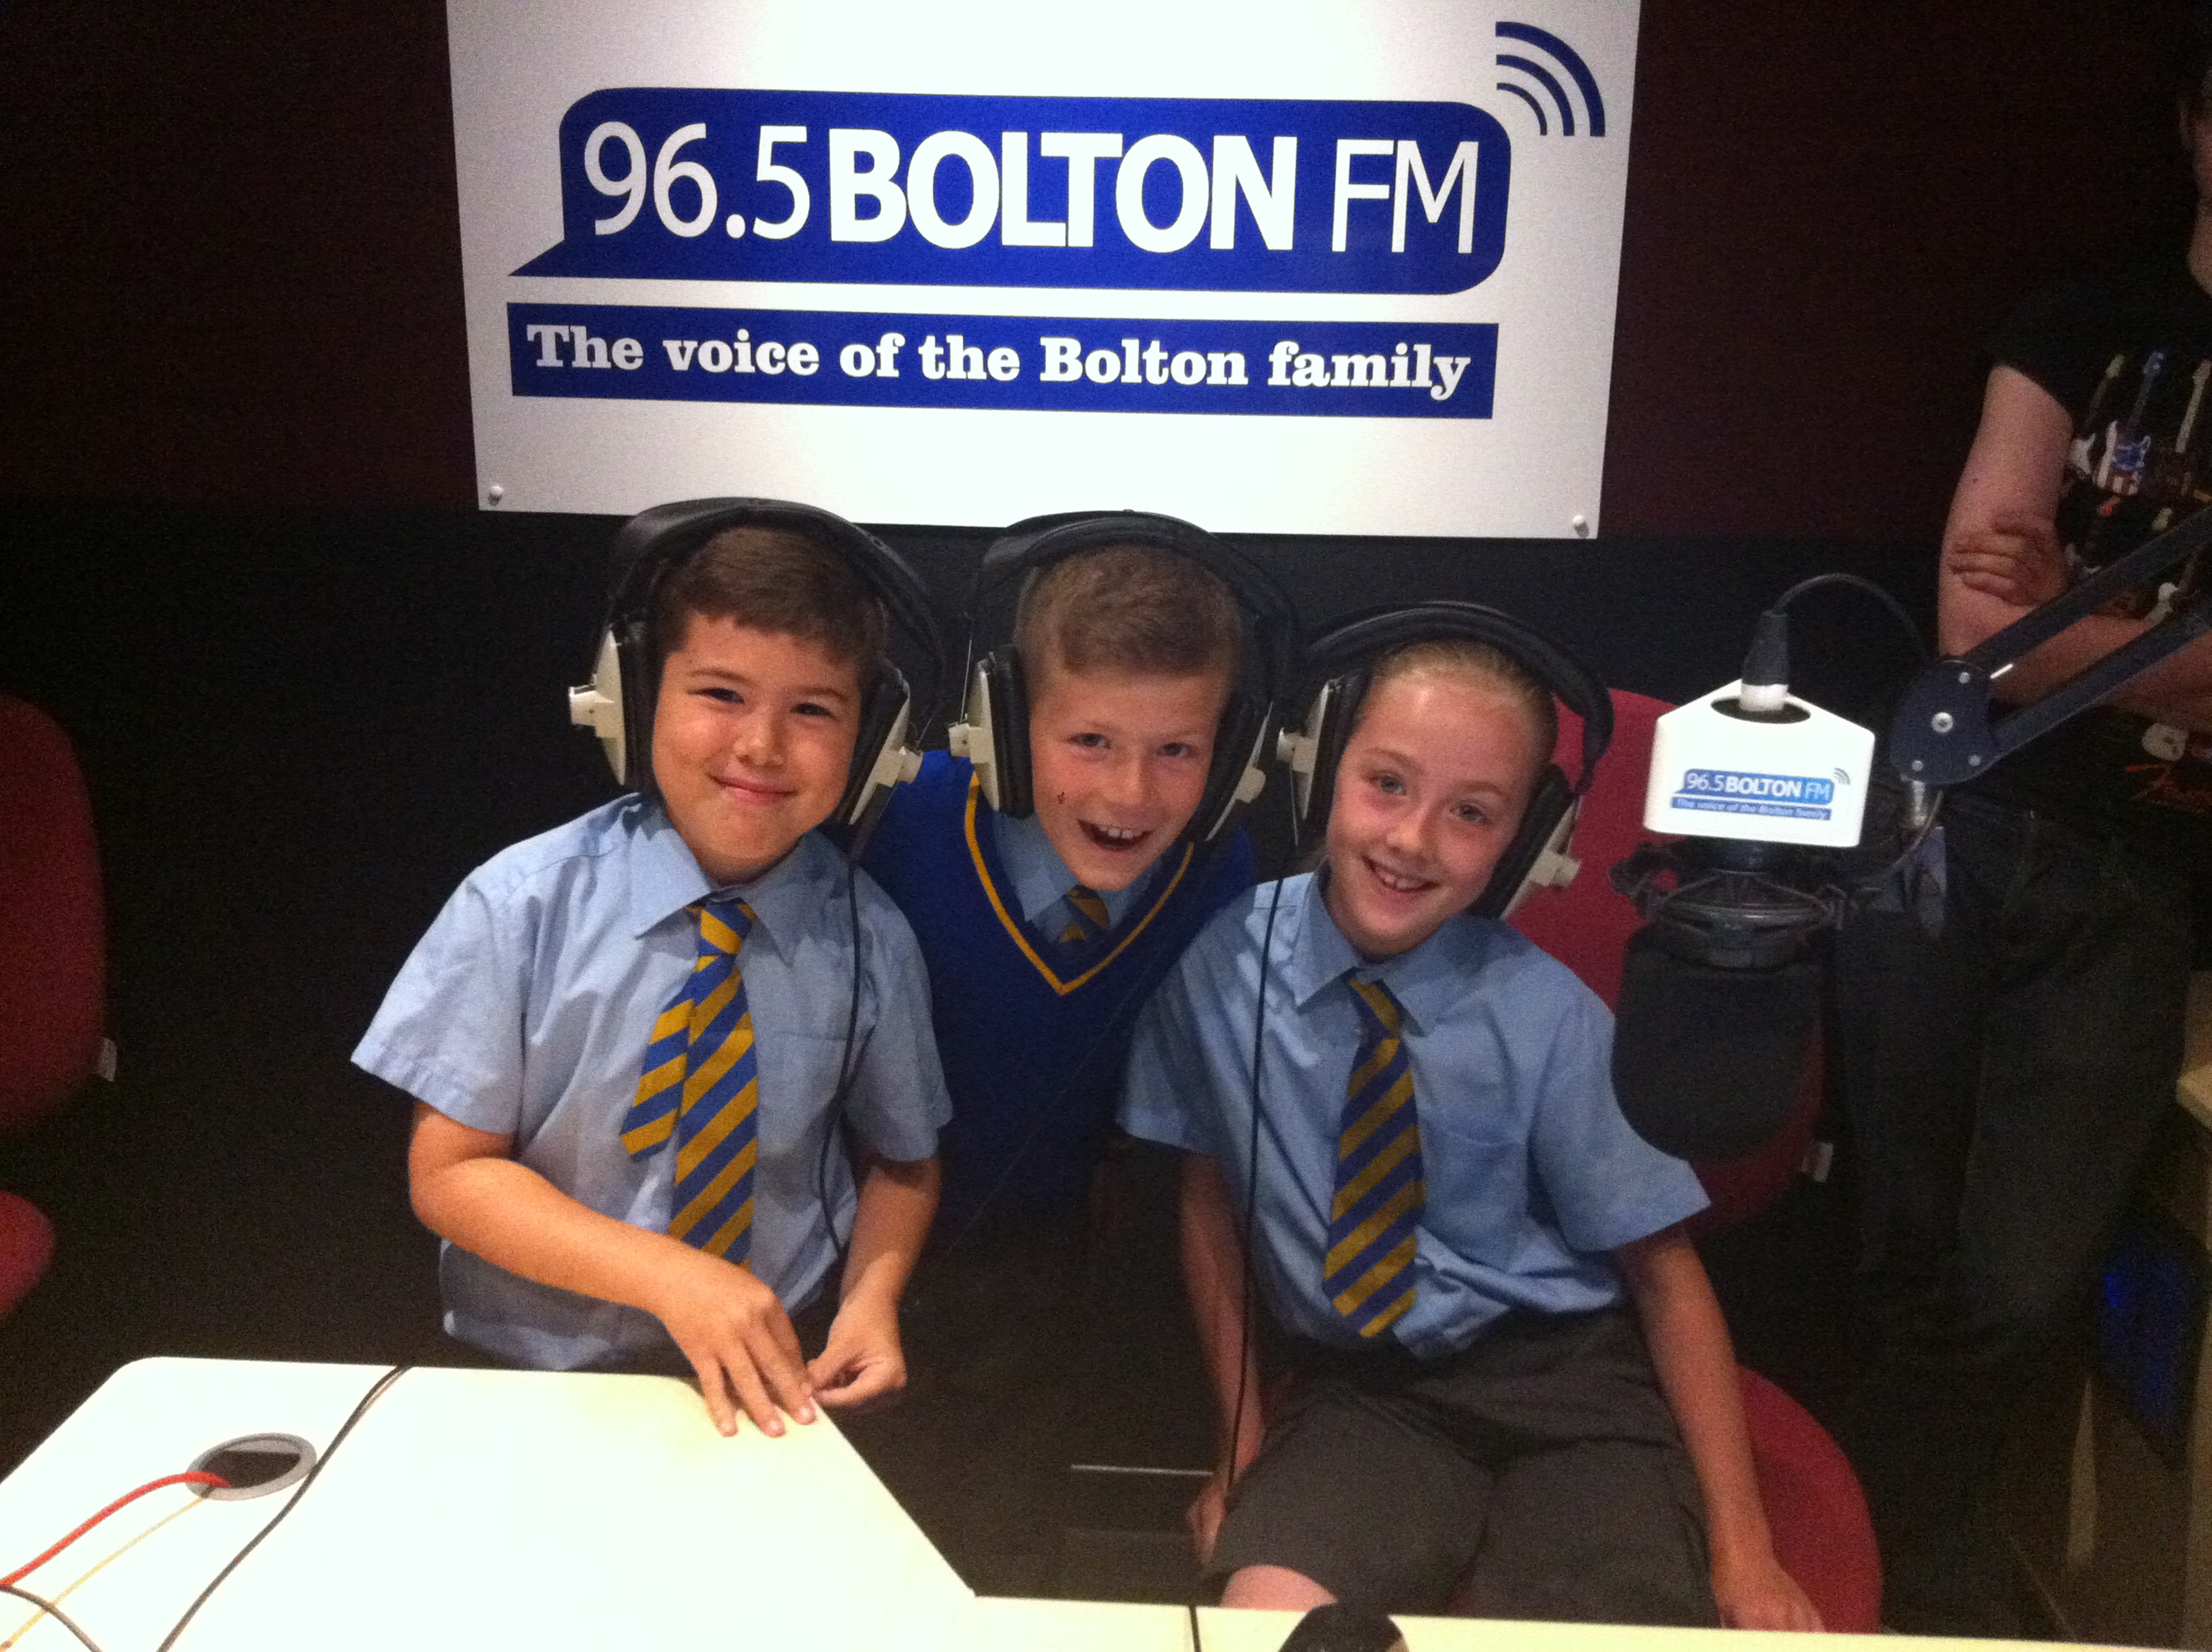 The Oaks Radio at Bolton FM